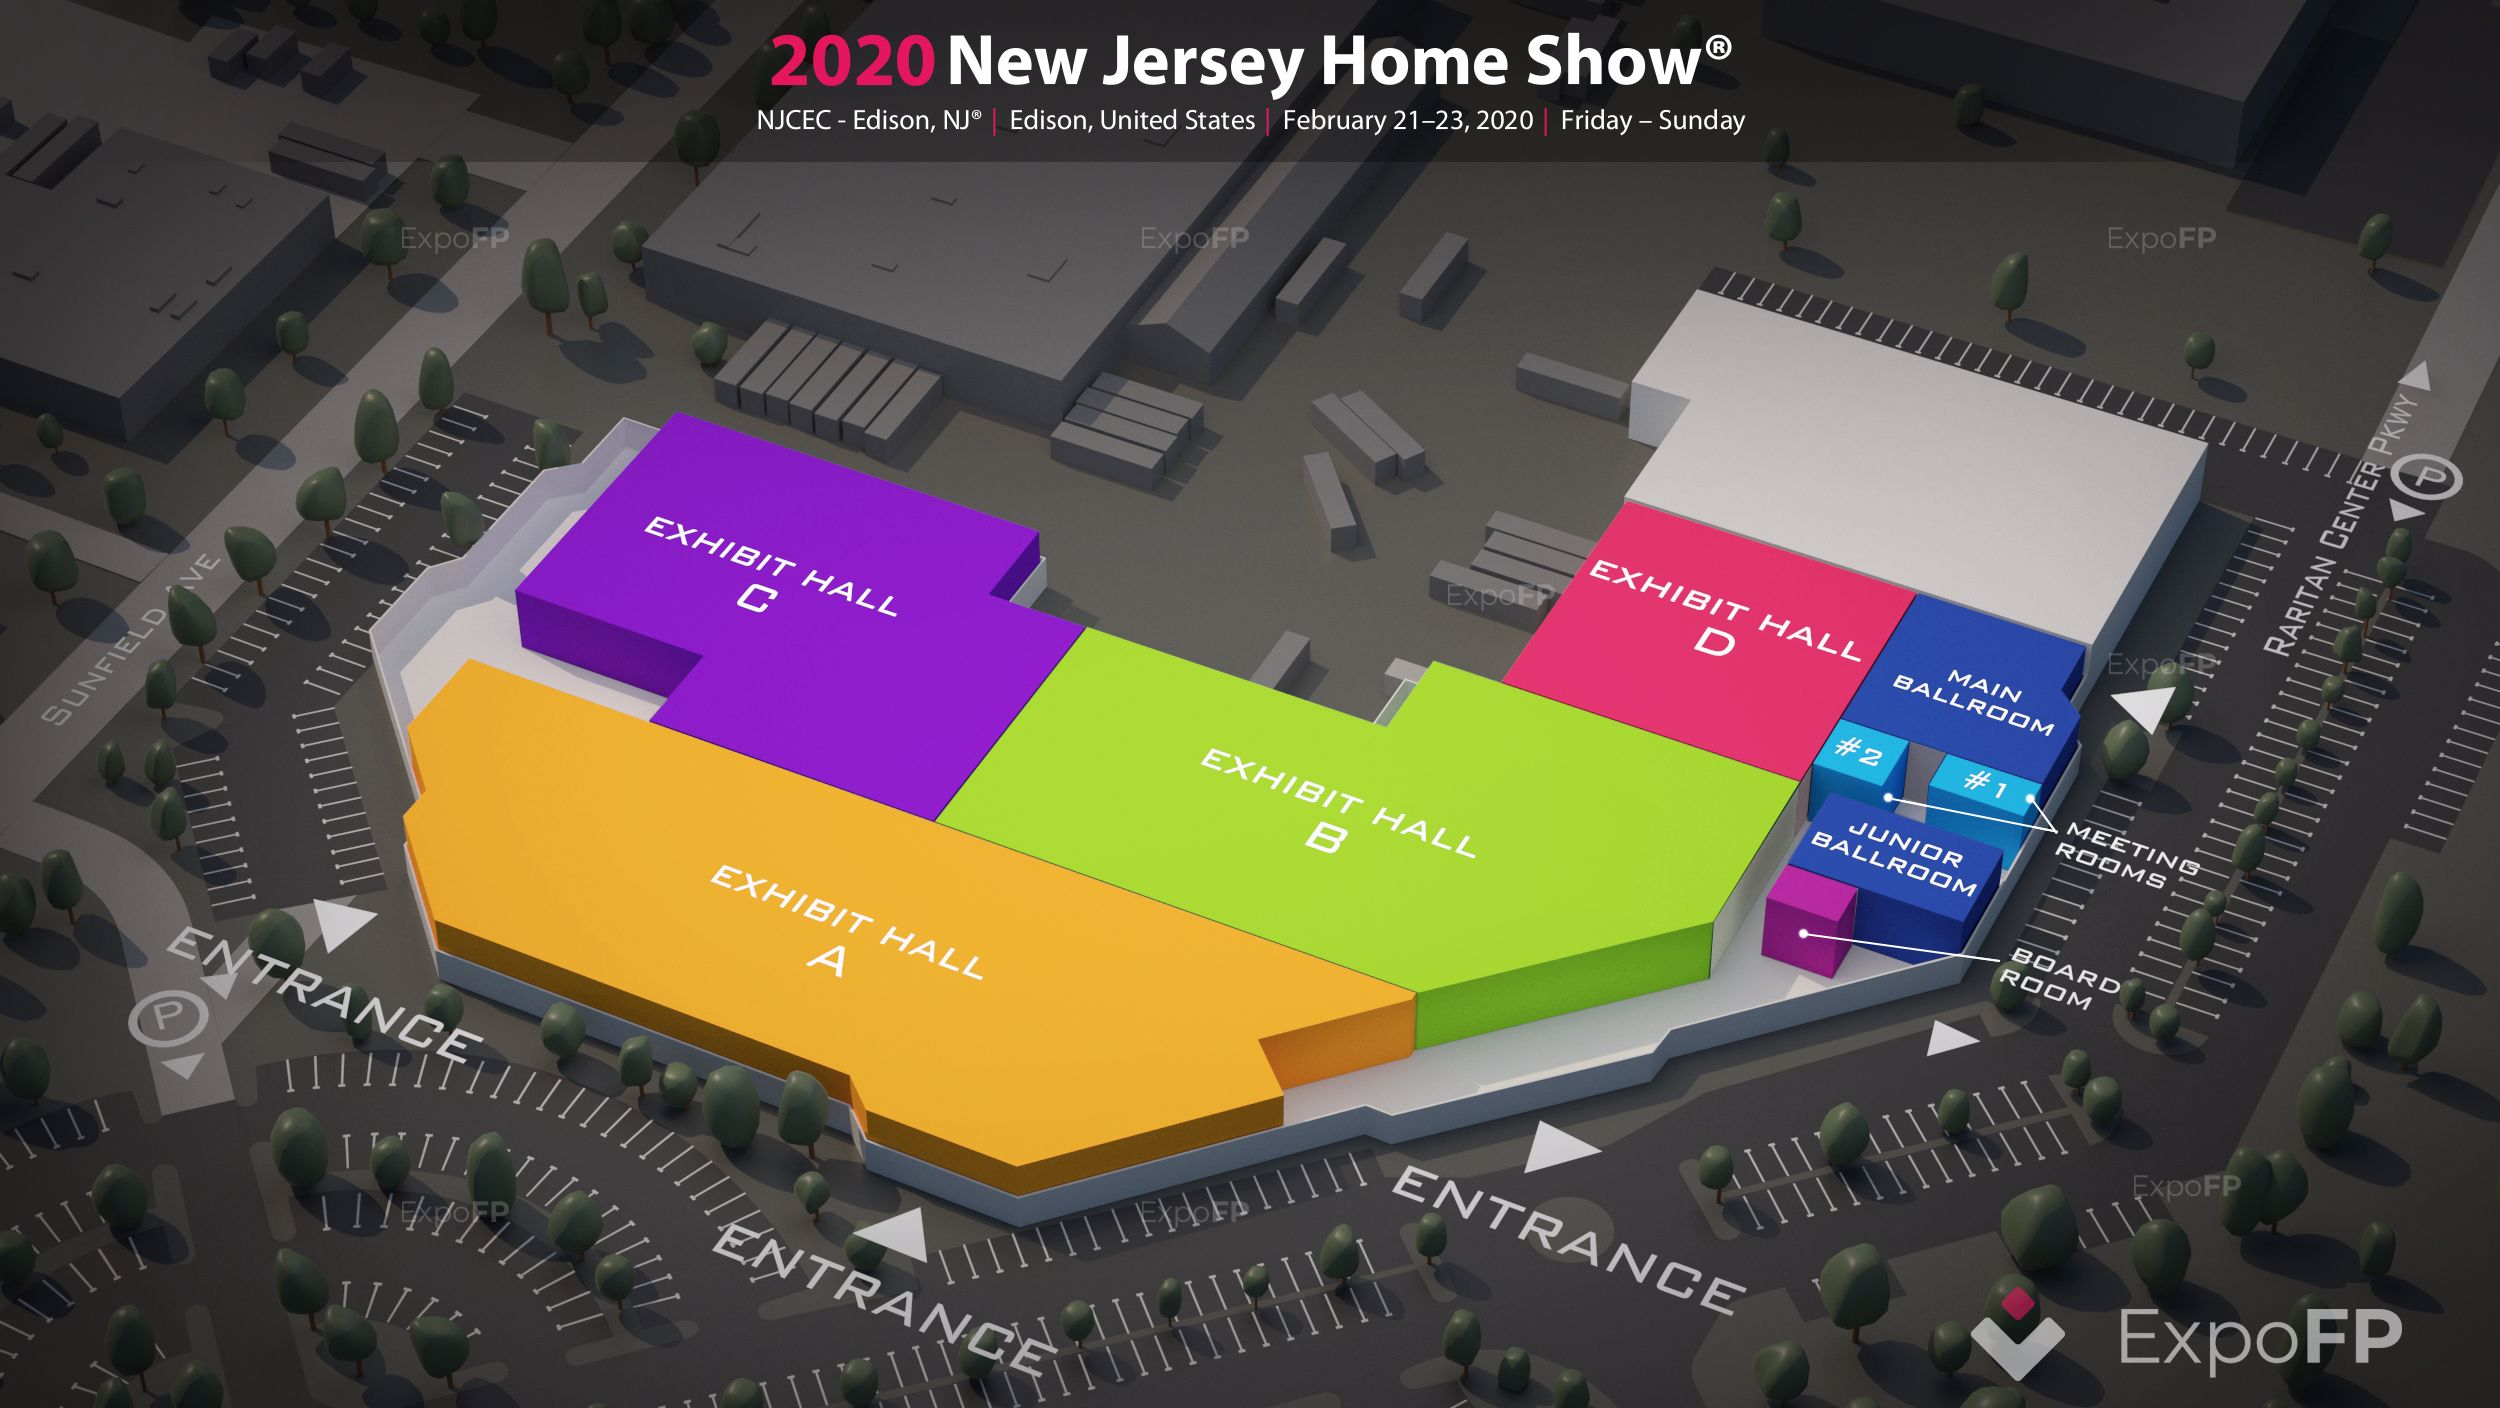 Home Show 2020 Near Me.New Jersey Home Show 2020 In Njcec